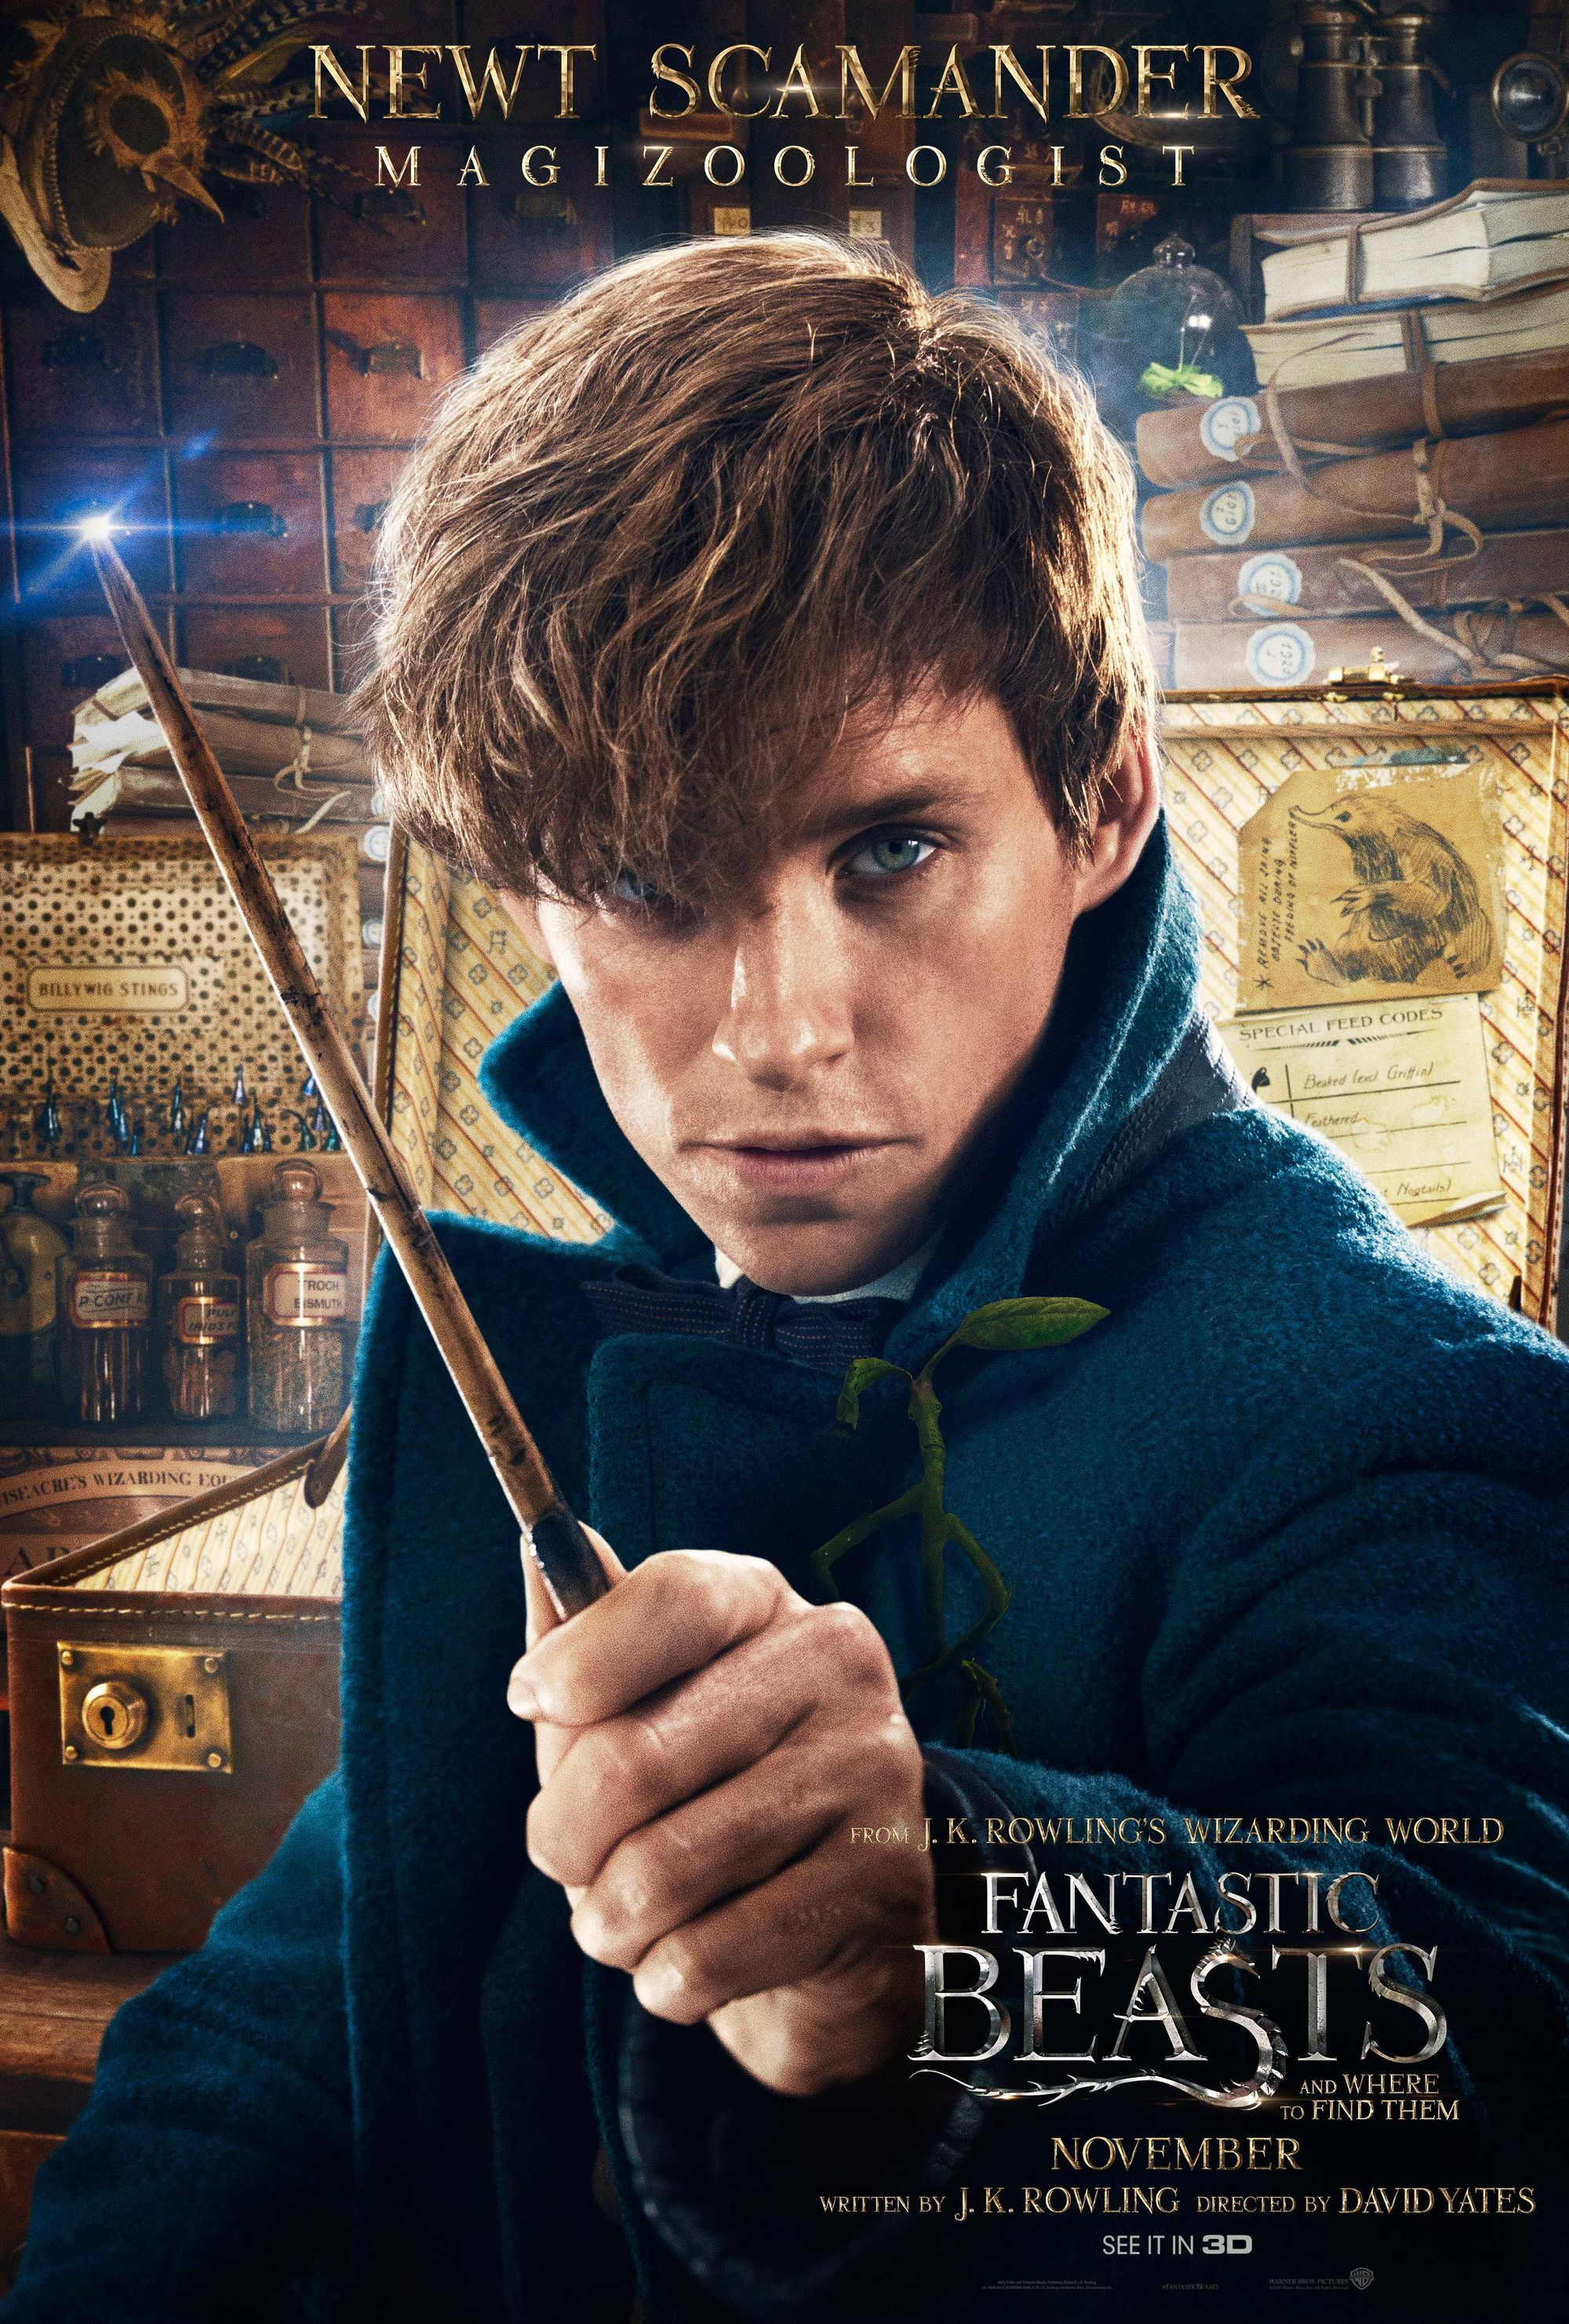 pin by hil mat on harry potter pinterest fantastic beasts beast